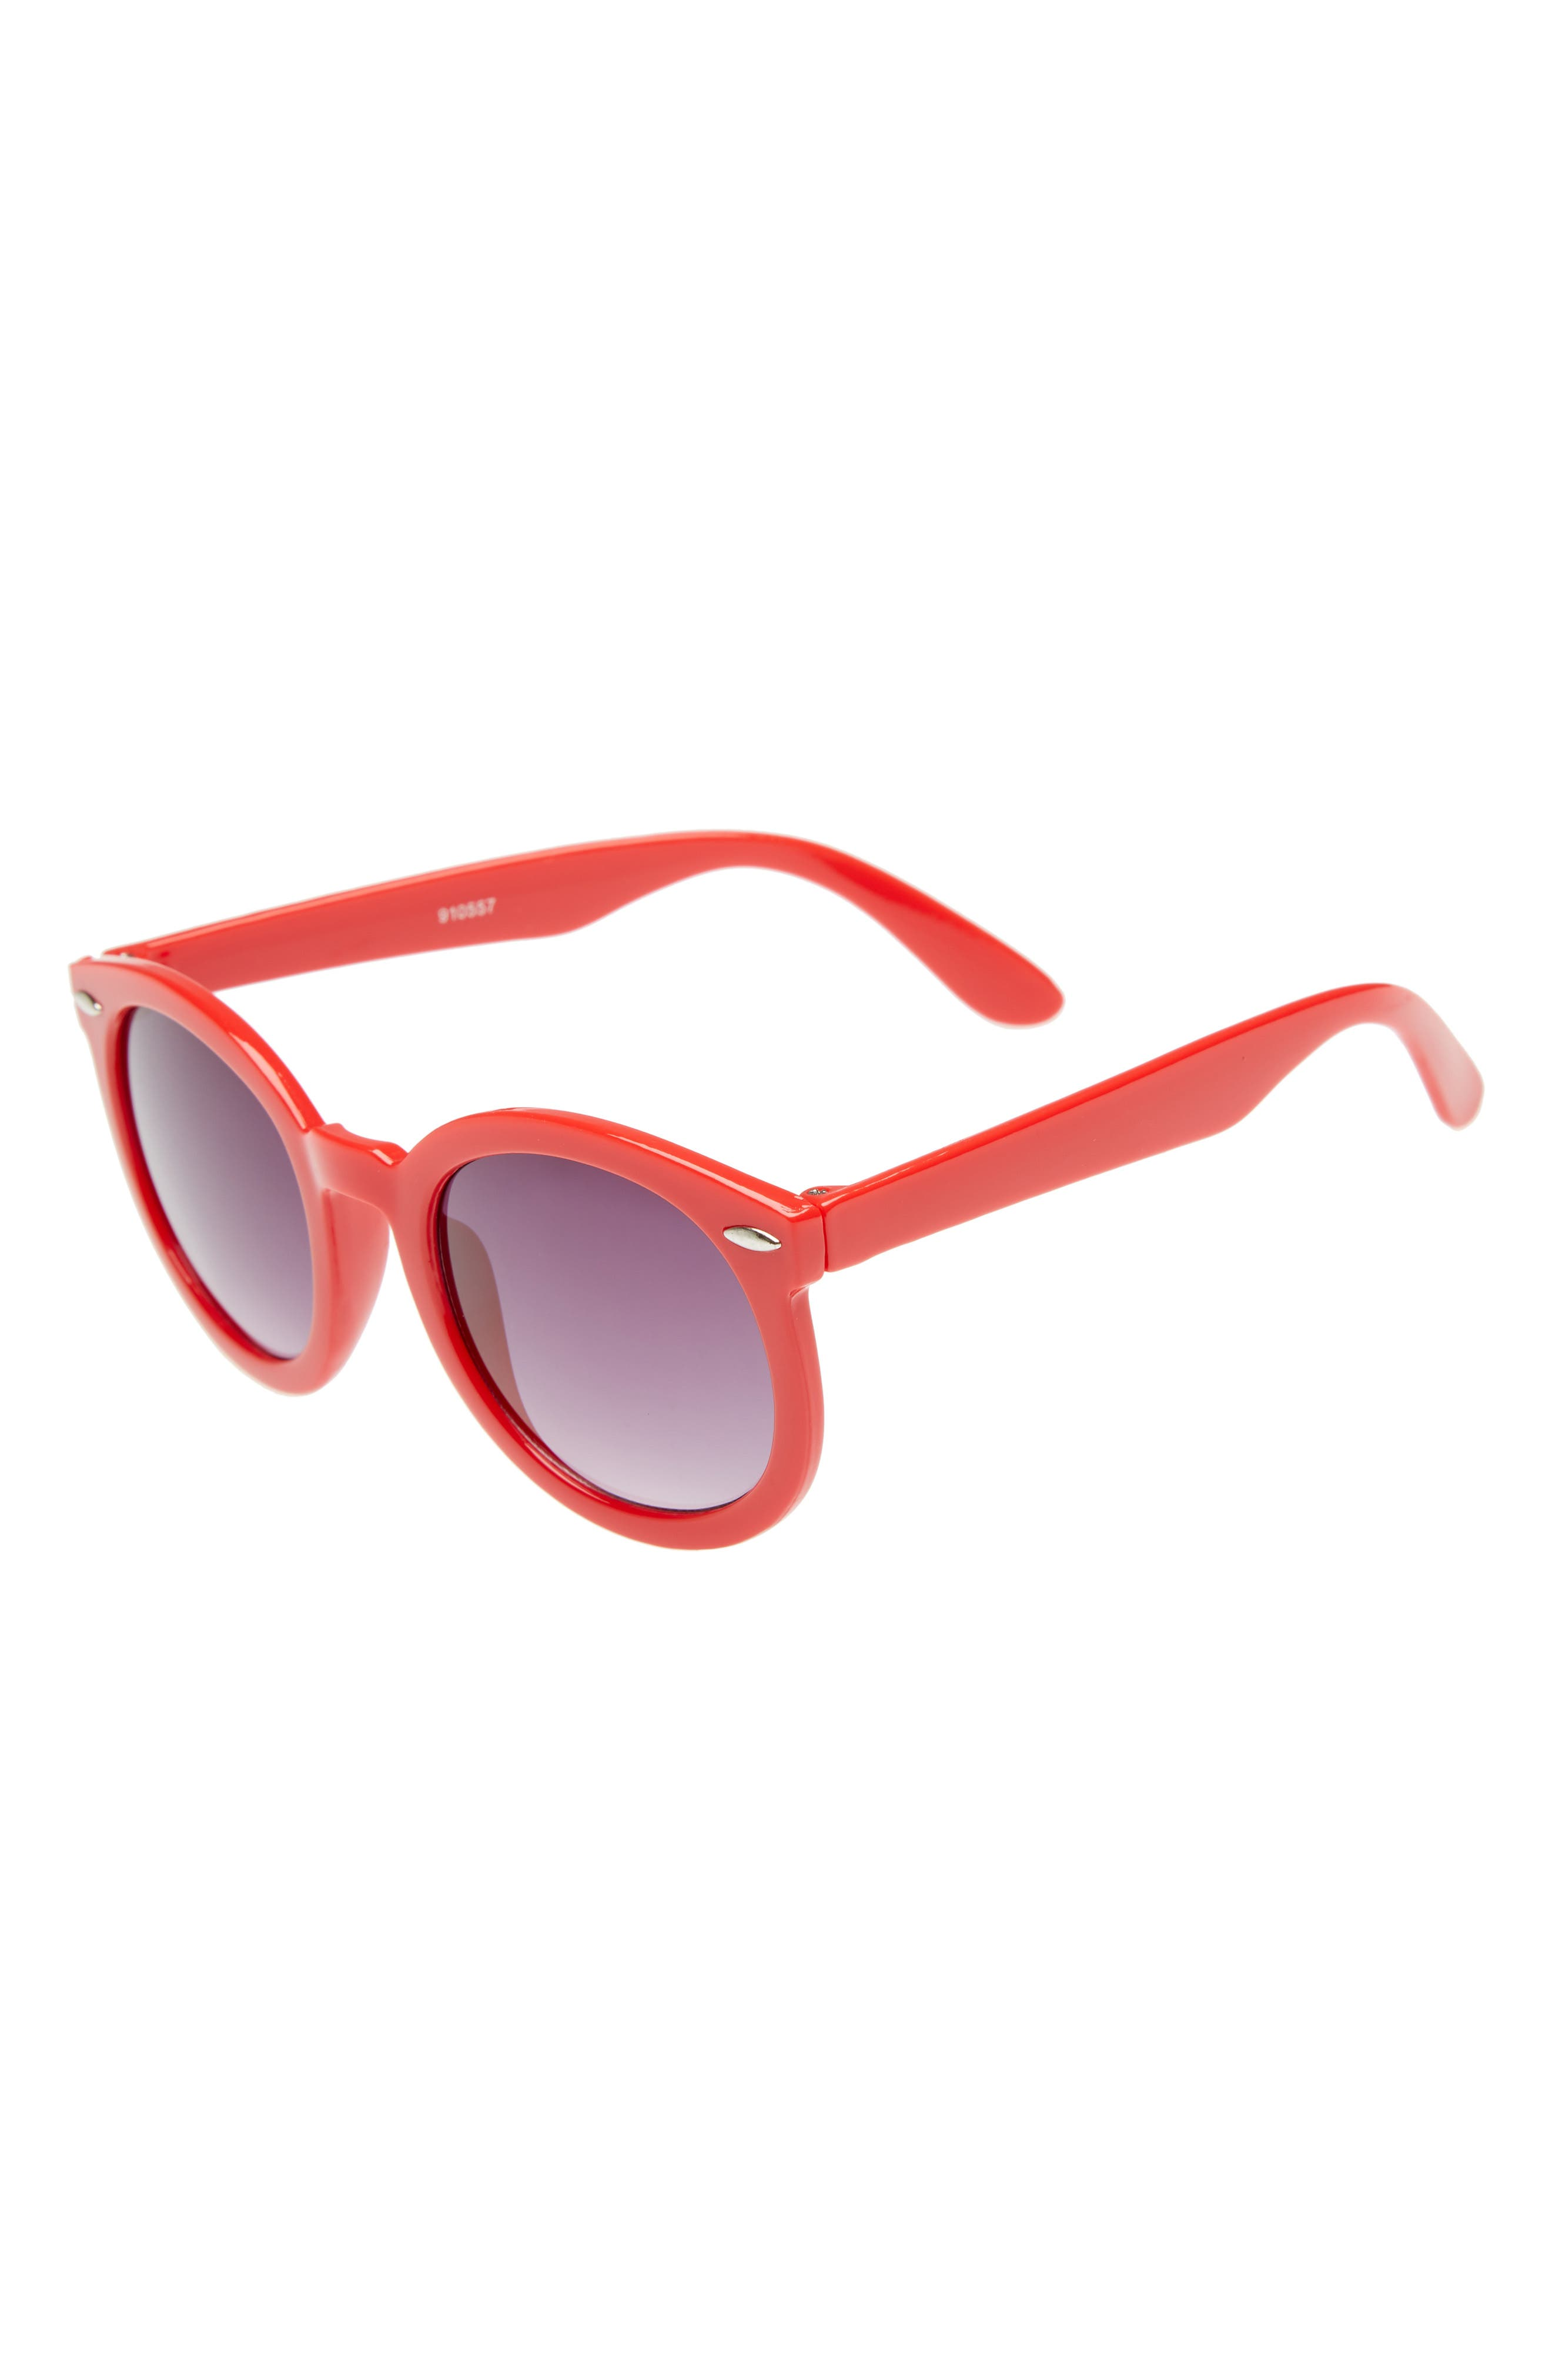 Round Sunglasses,                         Main,                         color, Red